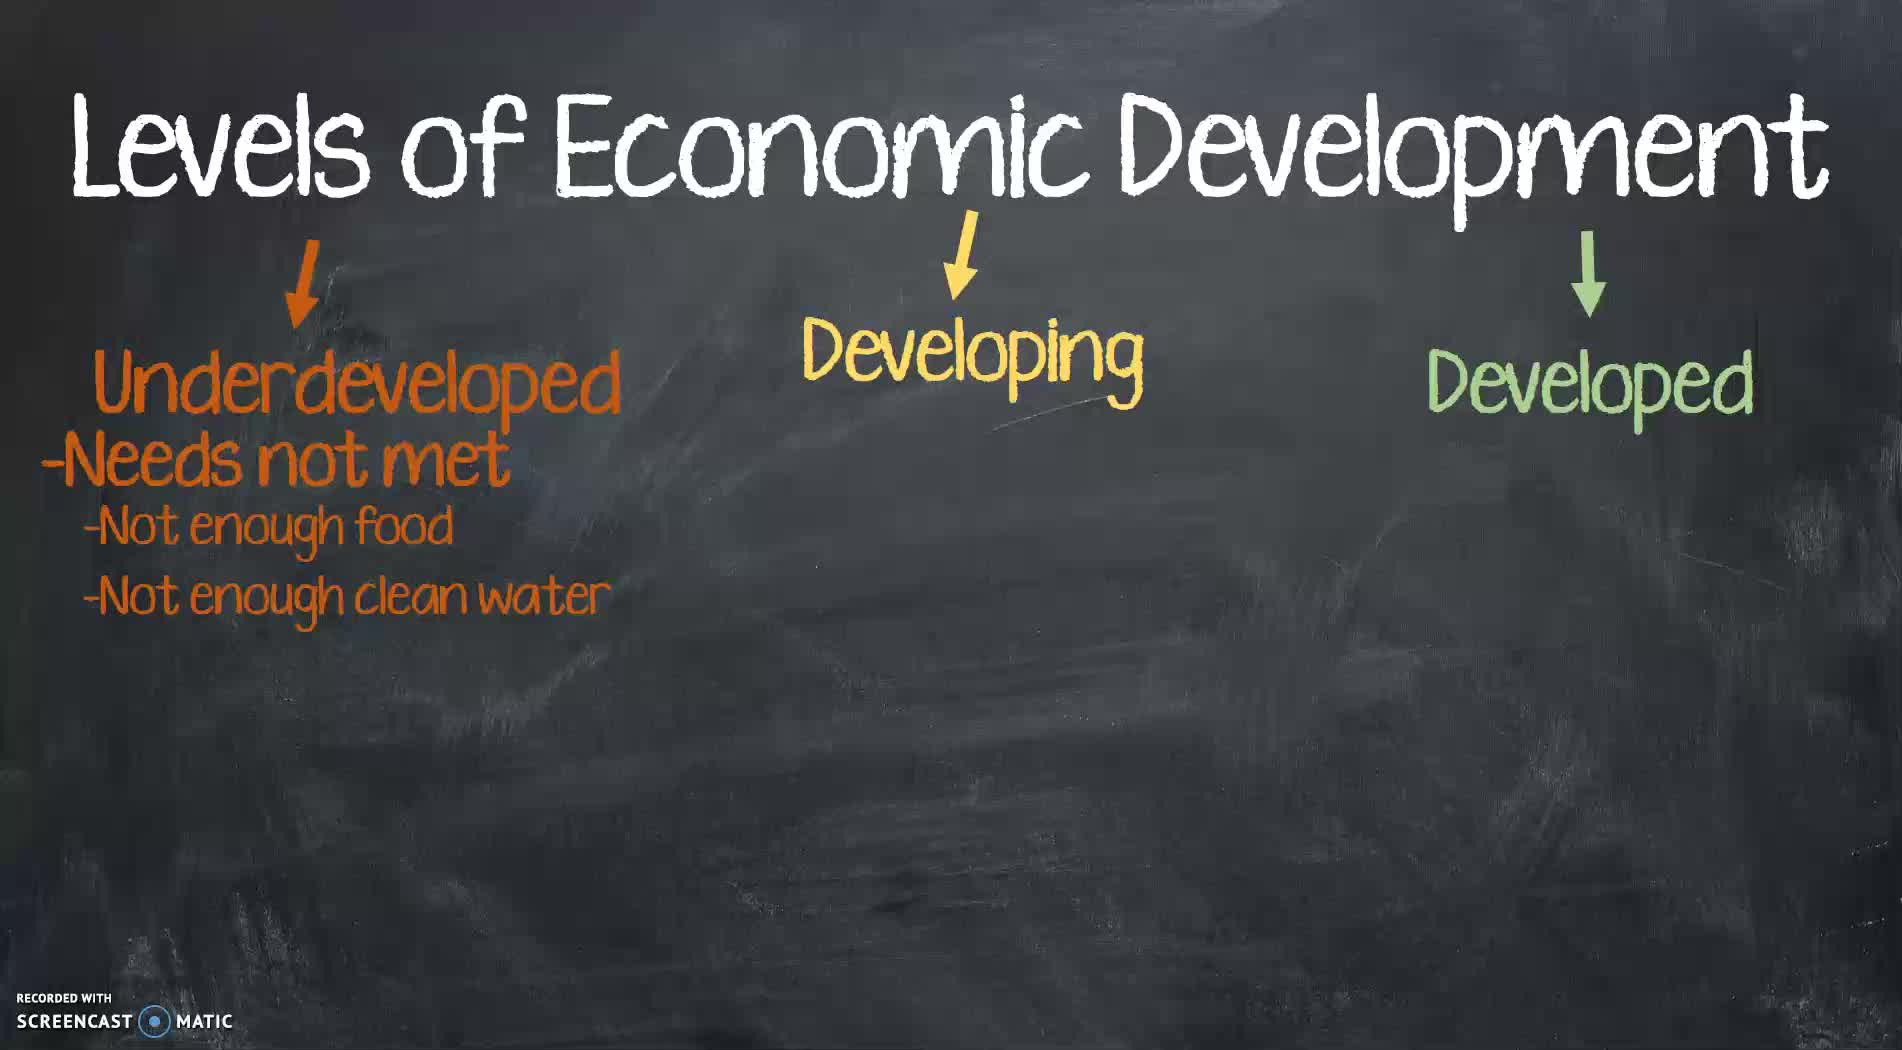 Levels of Economic Development